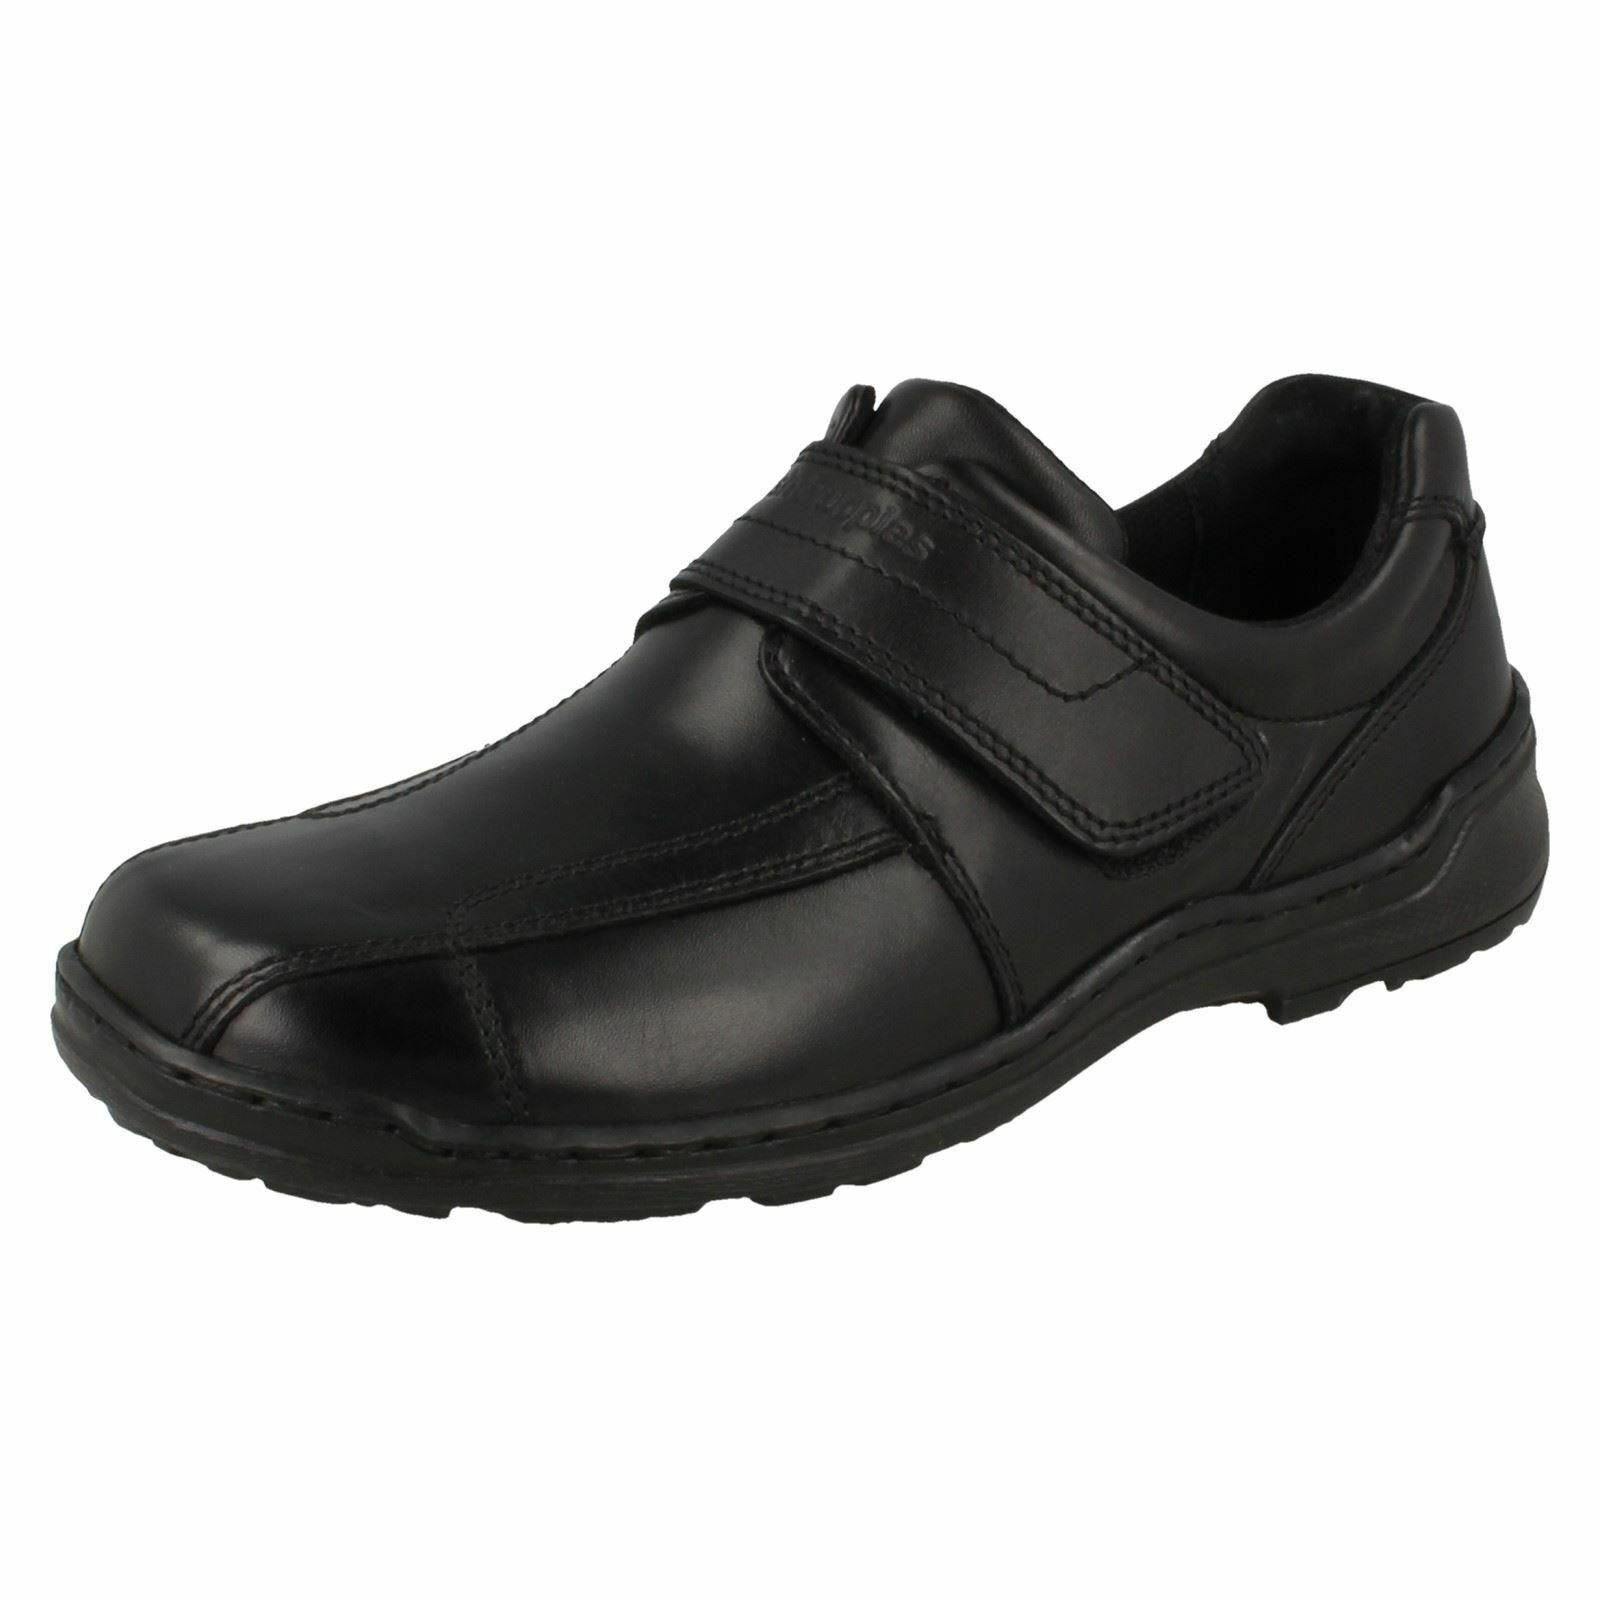 HUSH PUPPIES Grounds Hook and Loop Mens Black Leather Shoe